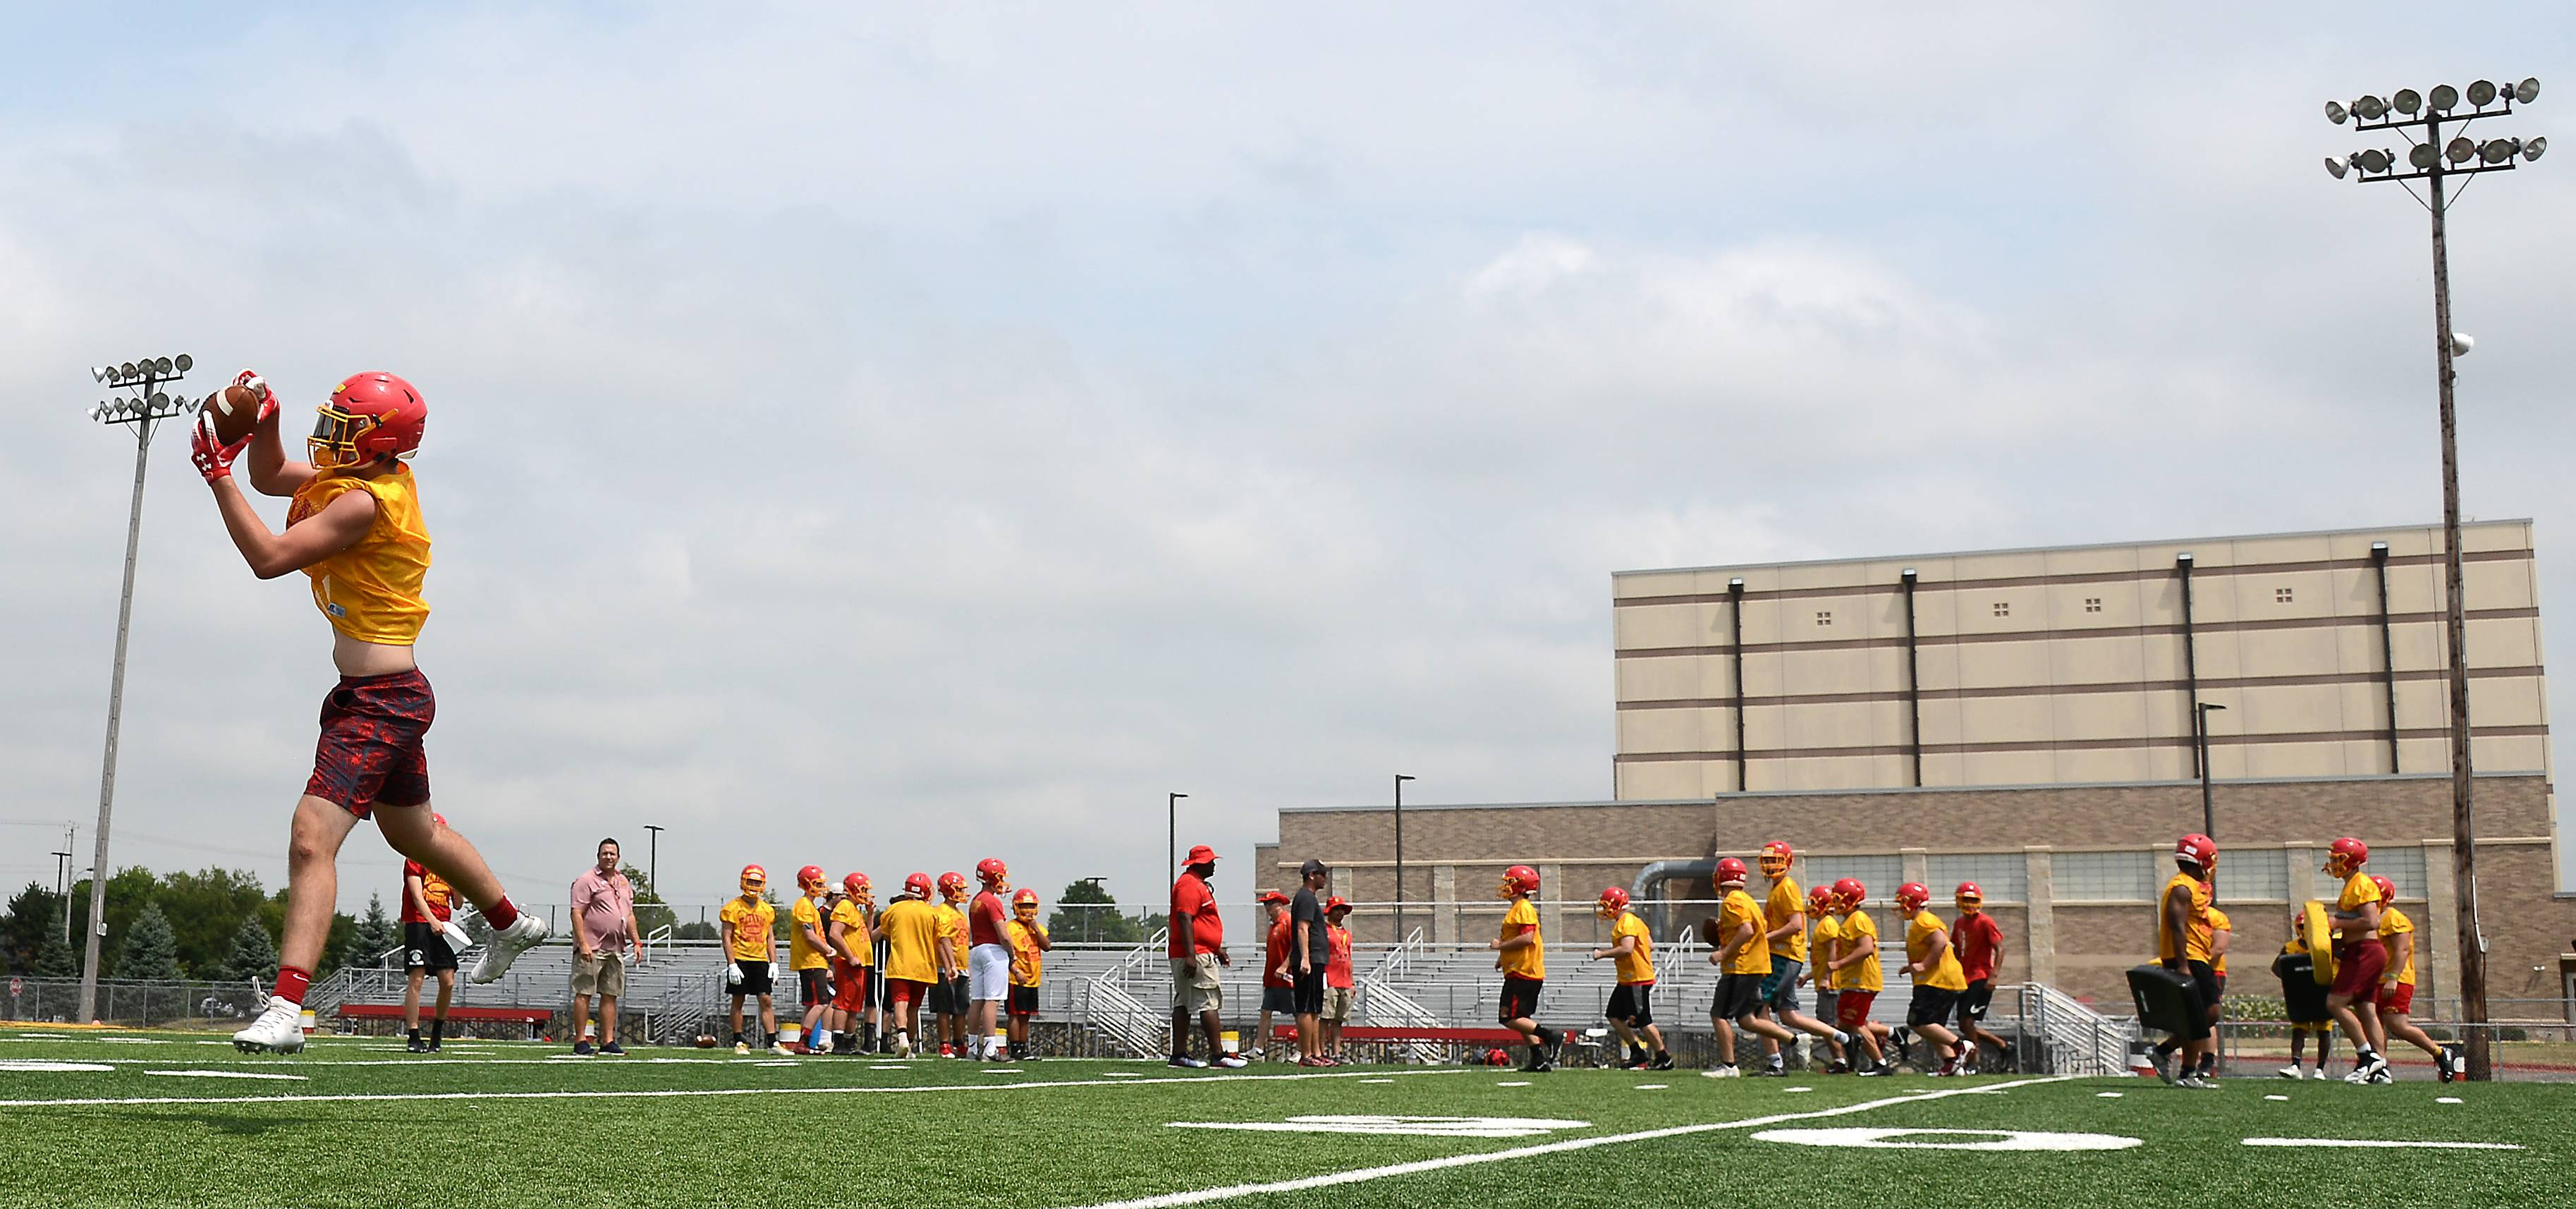 The defending state champion Batavia Bulldogs football team took the field Monday for the first day of football practice at Batavia High School.